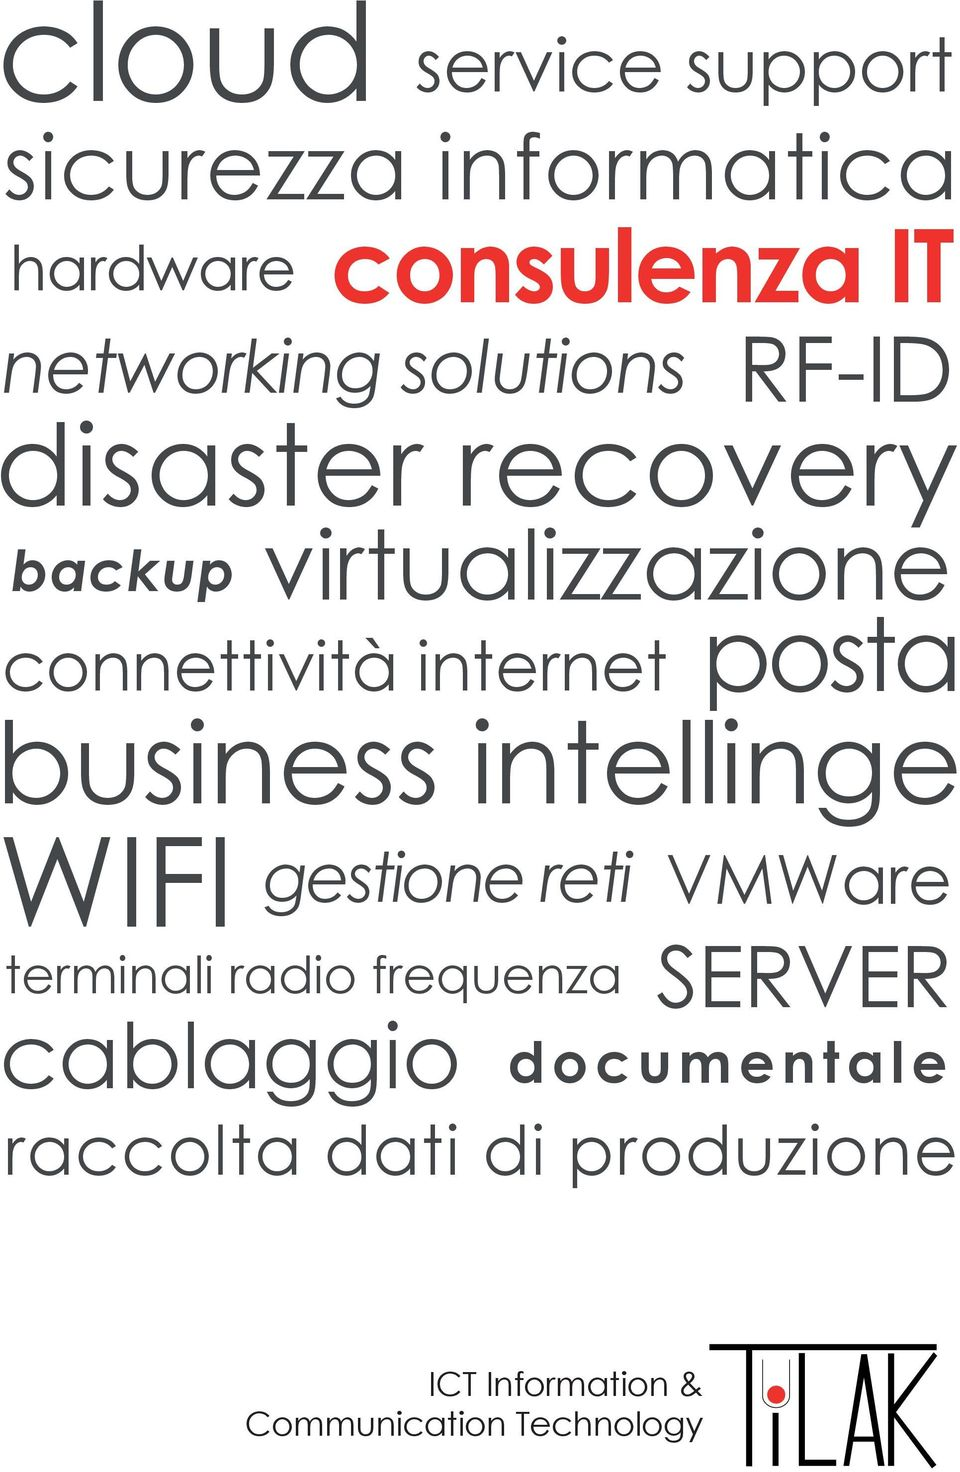 connettività internet posta business intellinge WIFI gestione reti